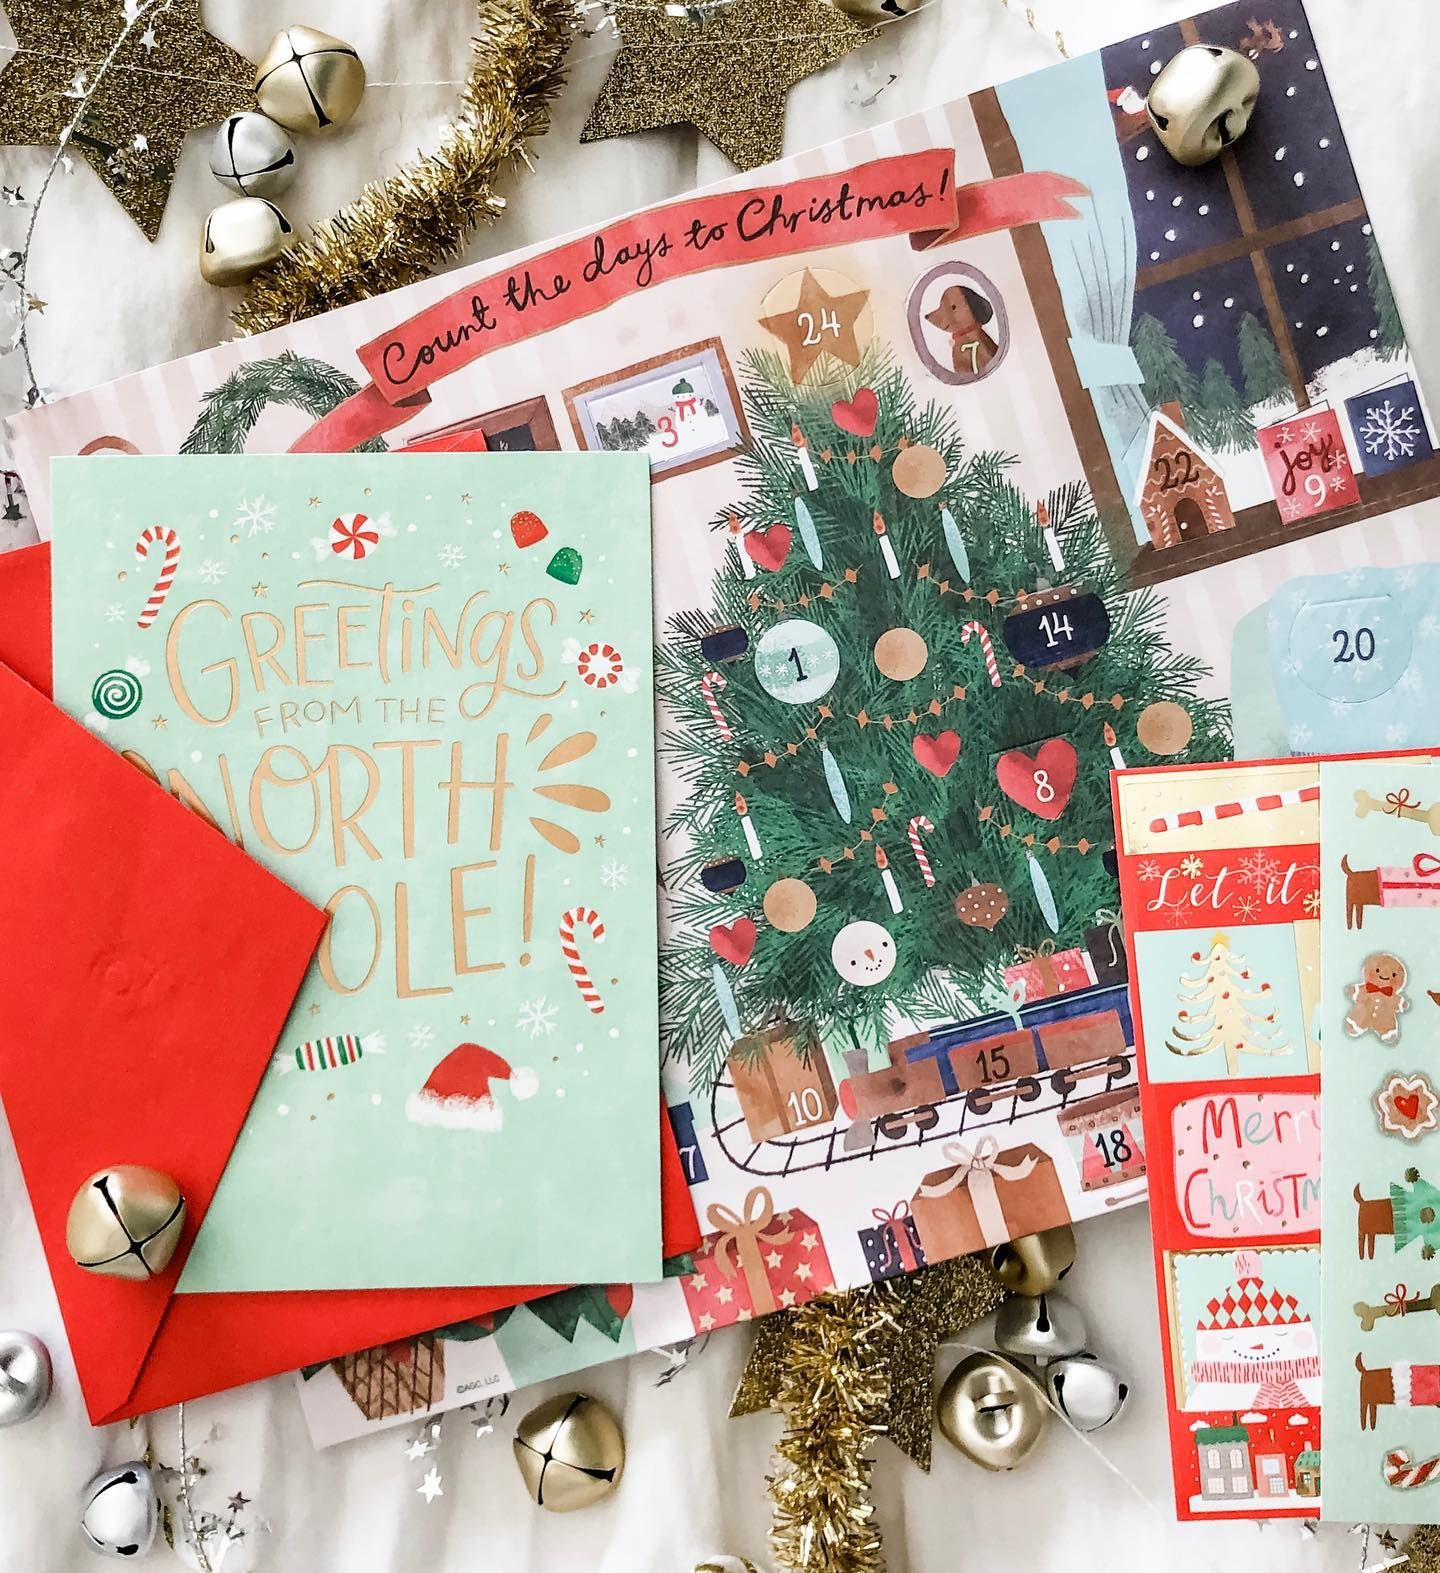 Did You Know There Are 10 Days Left Till Christmas So If You Haven T Gotten Those Christmas Car In 2020 American Greetings Cards Christmas Calendar Days To Christmas